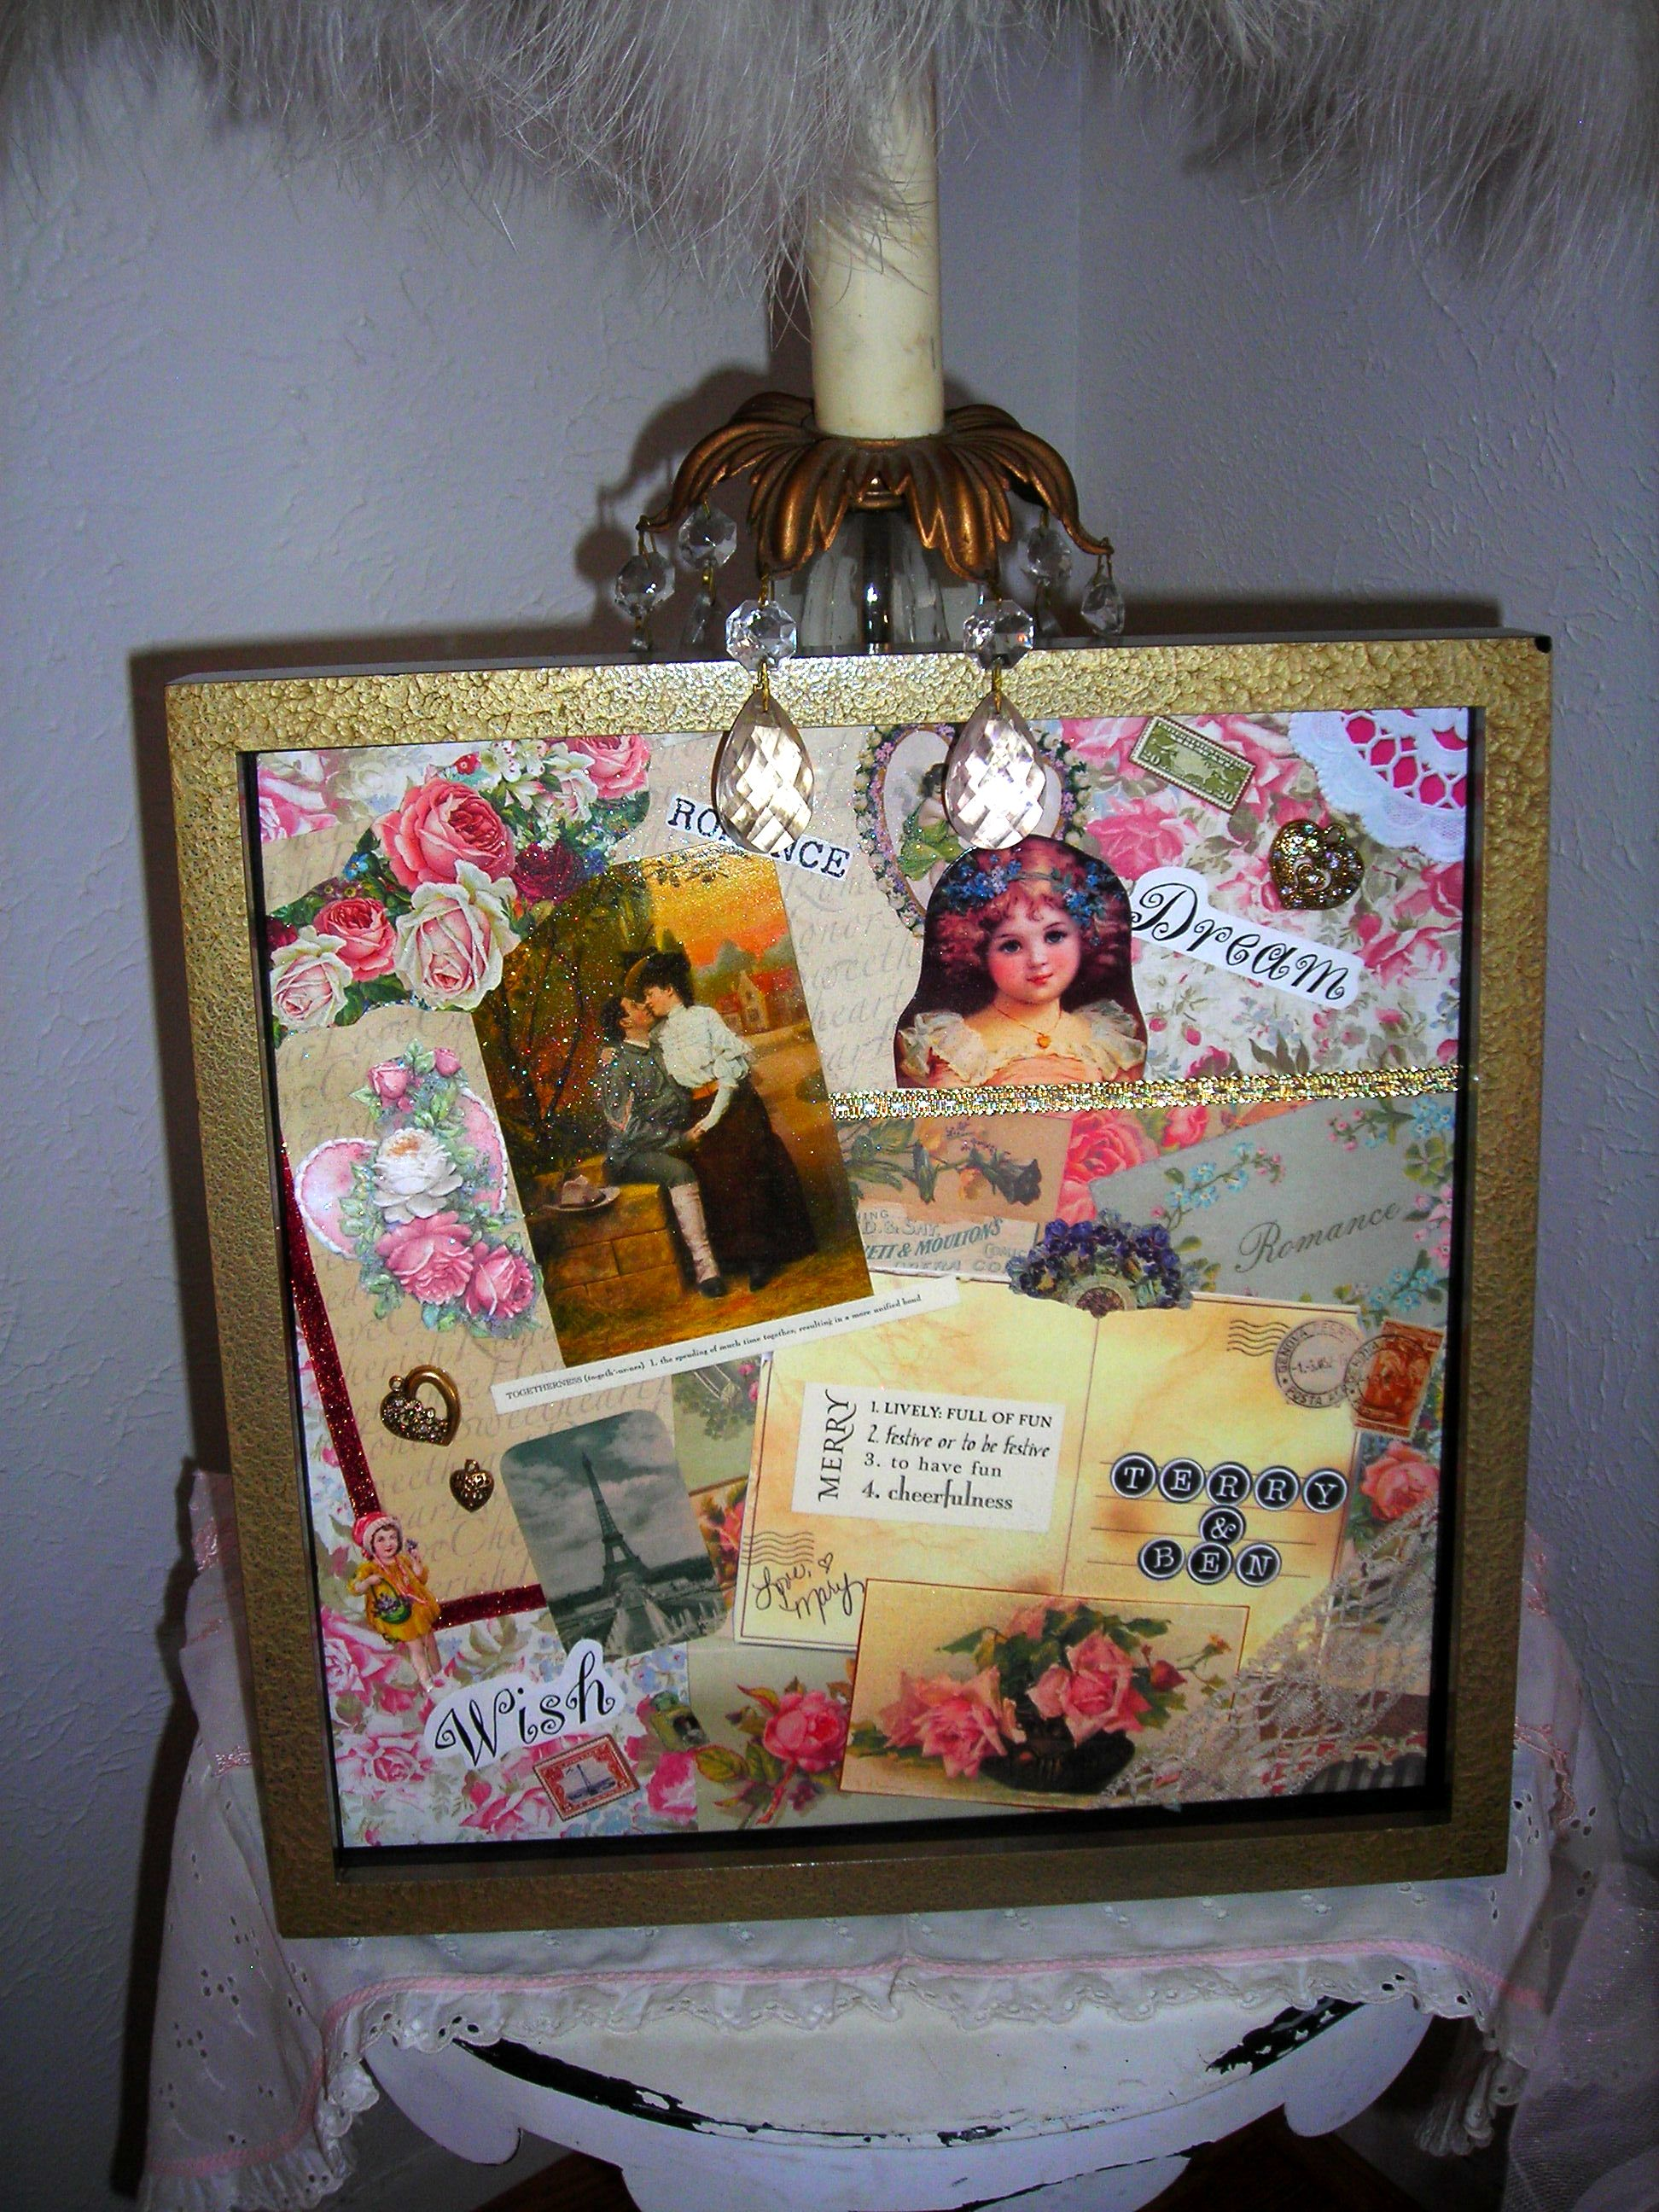 dear, sweet, mary (she's such a valentine!) made this collage for me for cmas. it's soooo perfect!!! i love it, mary!